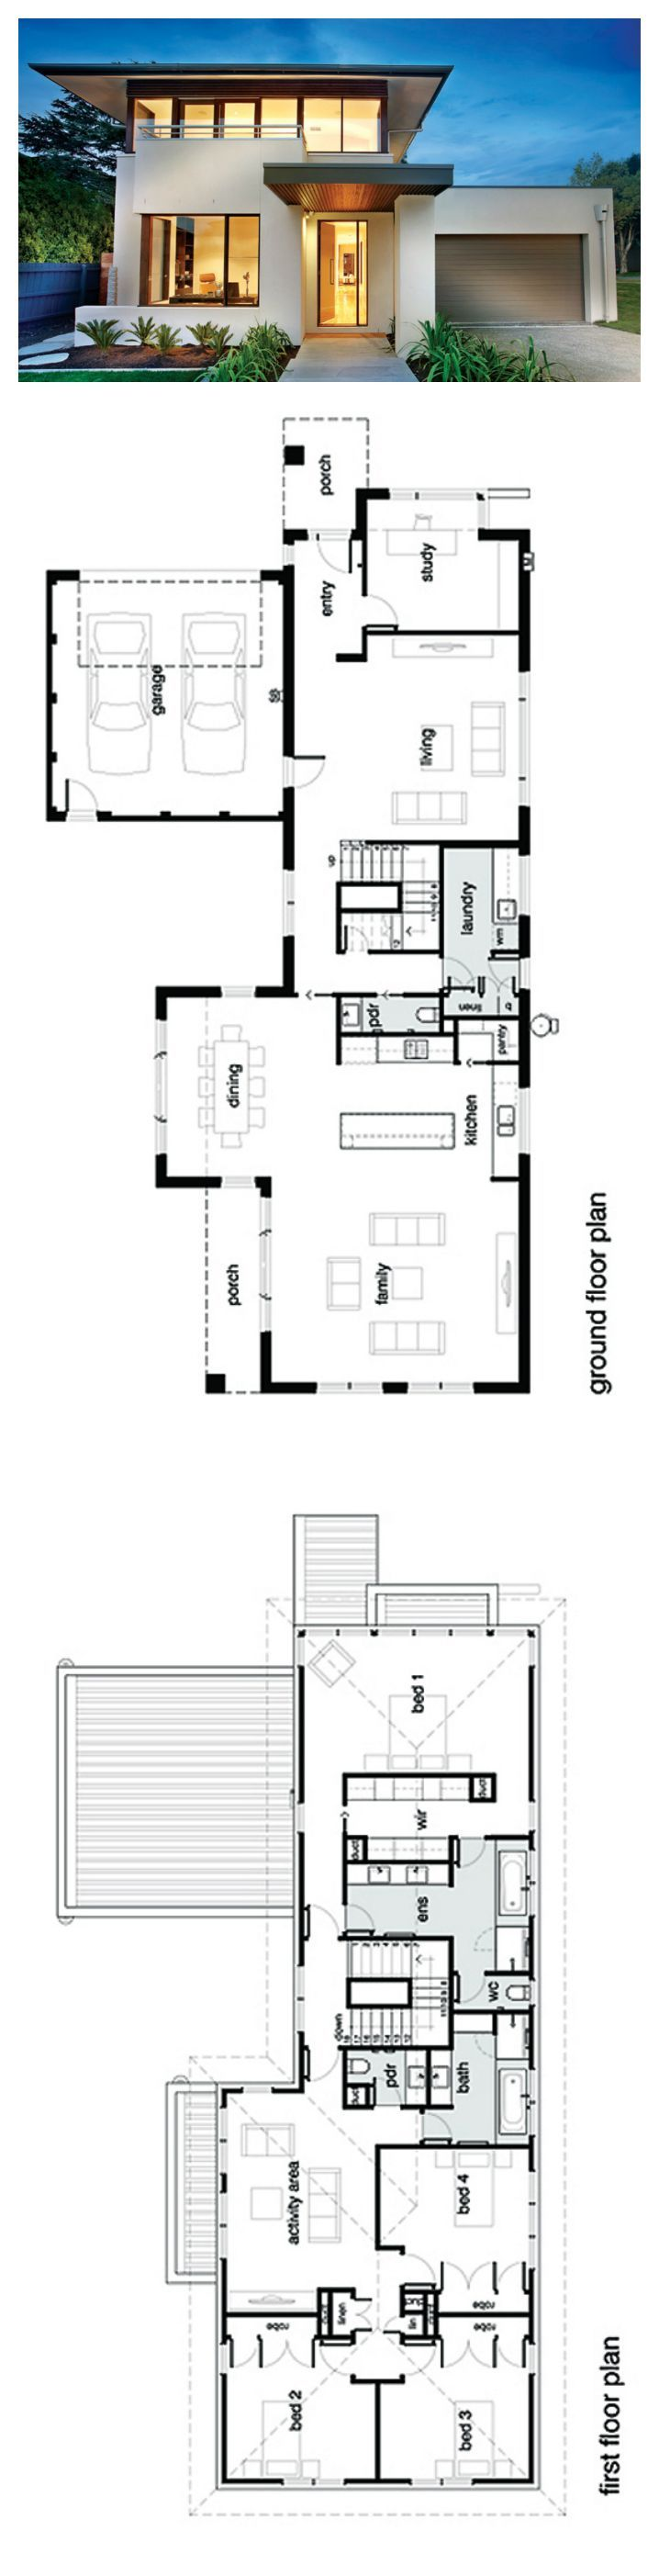 Best 25 modern house plans ideas on pinterest for Contemporary house floor plans